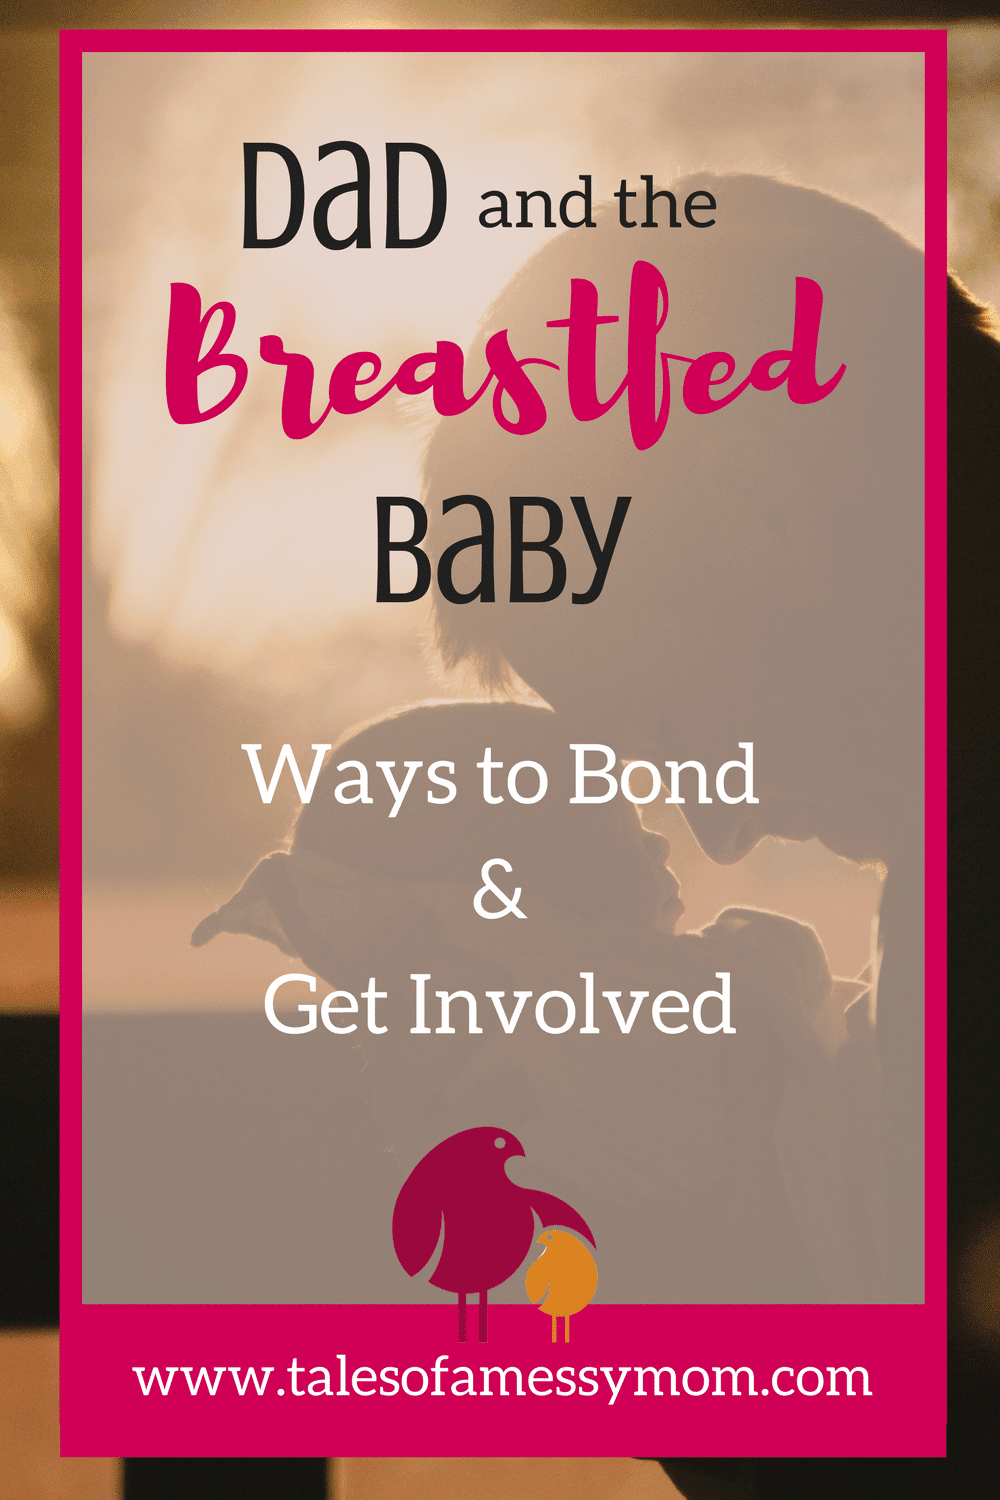 Dads can often feel left out, especially if baby is breastfed. Take some helpful hints and tips from a new dad on how he bonded with baby and got involved with the breastfeeding process. http://www.talesofamessymom.com